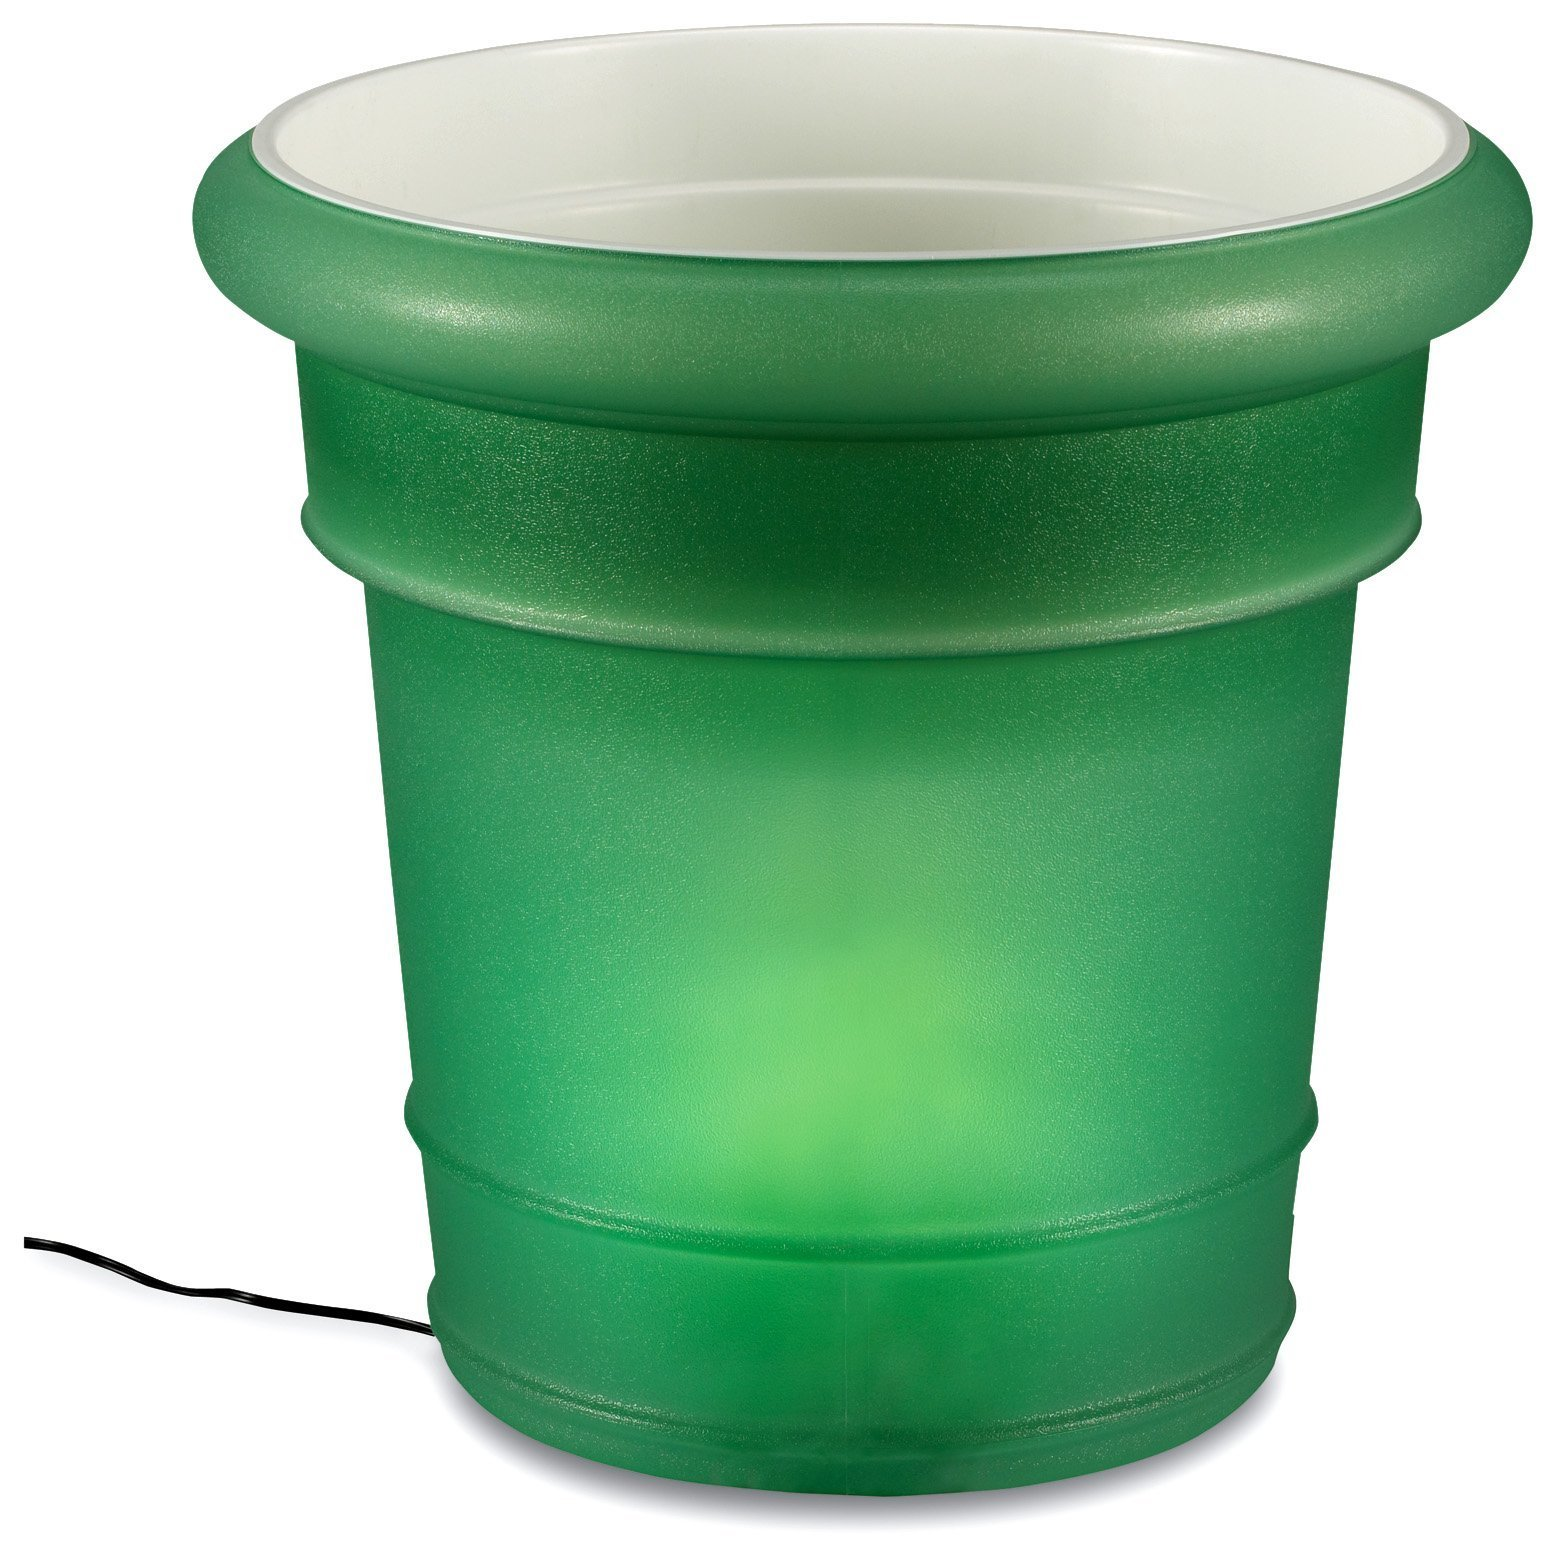 Gardenglo 884 Olive 120 Volt Planter, 20-inches Tall x 21-inches Wide